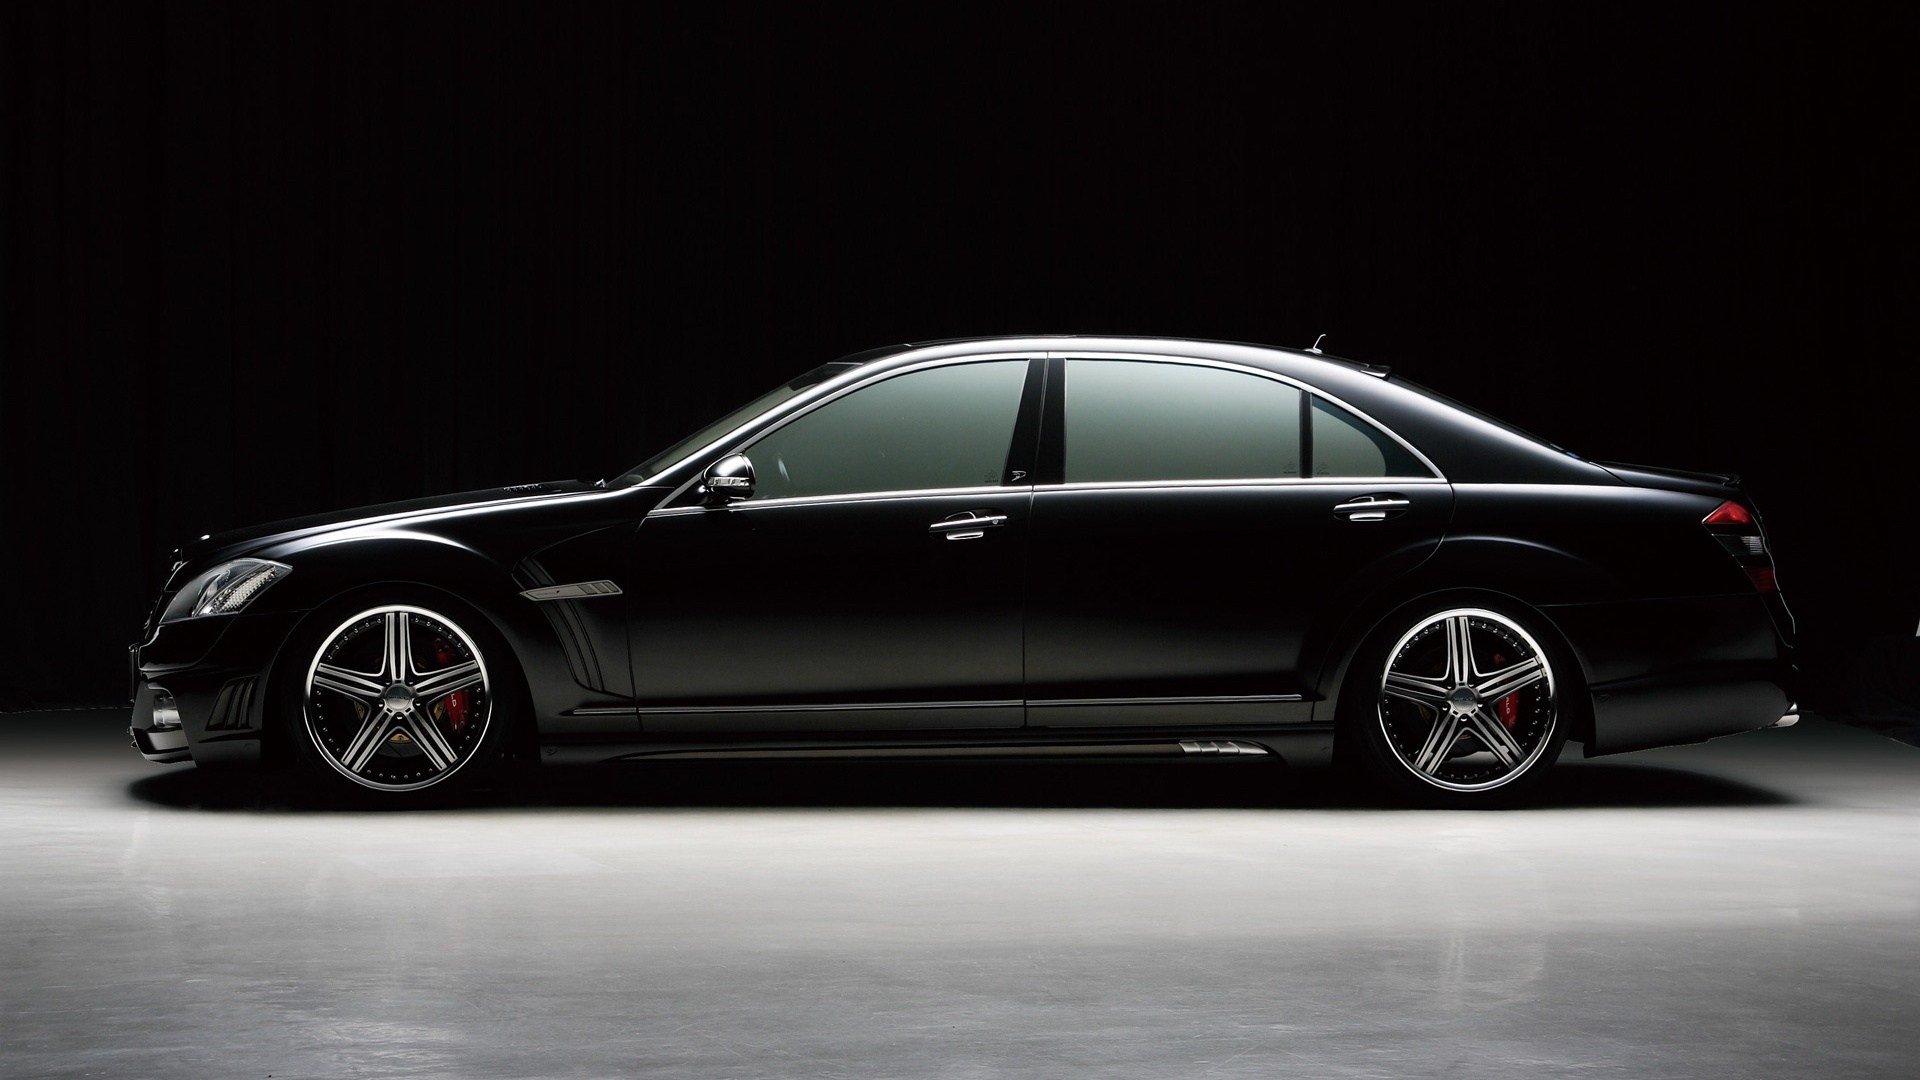 Mercedes Benz S Class Black Bison Edition wallpaper   556394 1920x1080